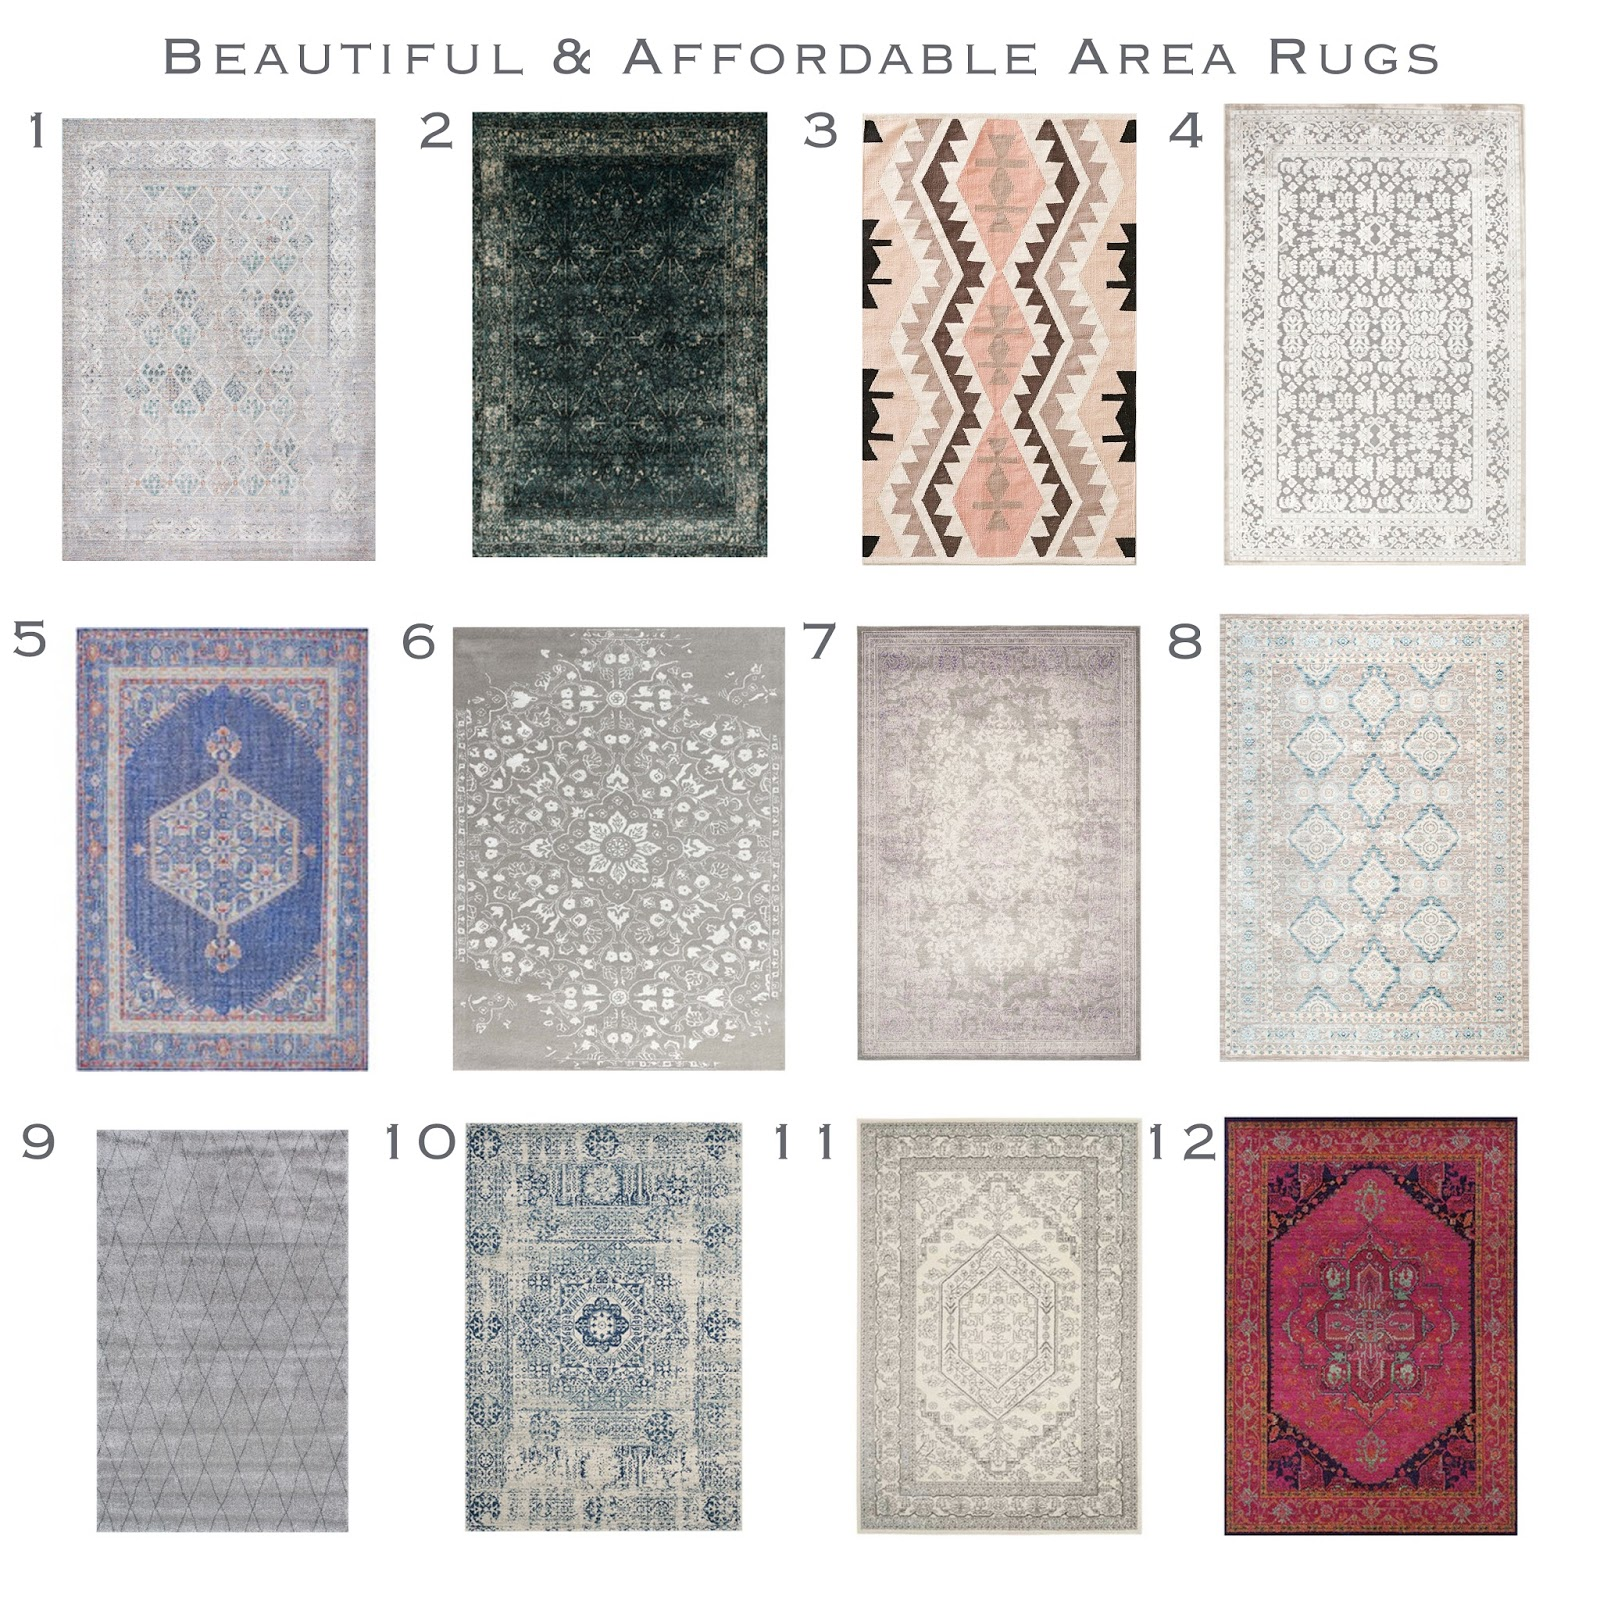 area rug rugs beautiful affordable farmhouse style